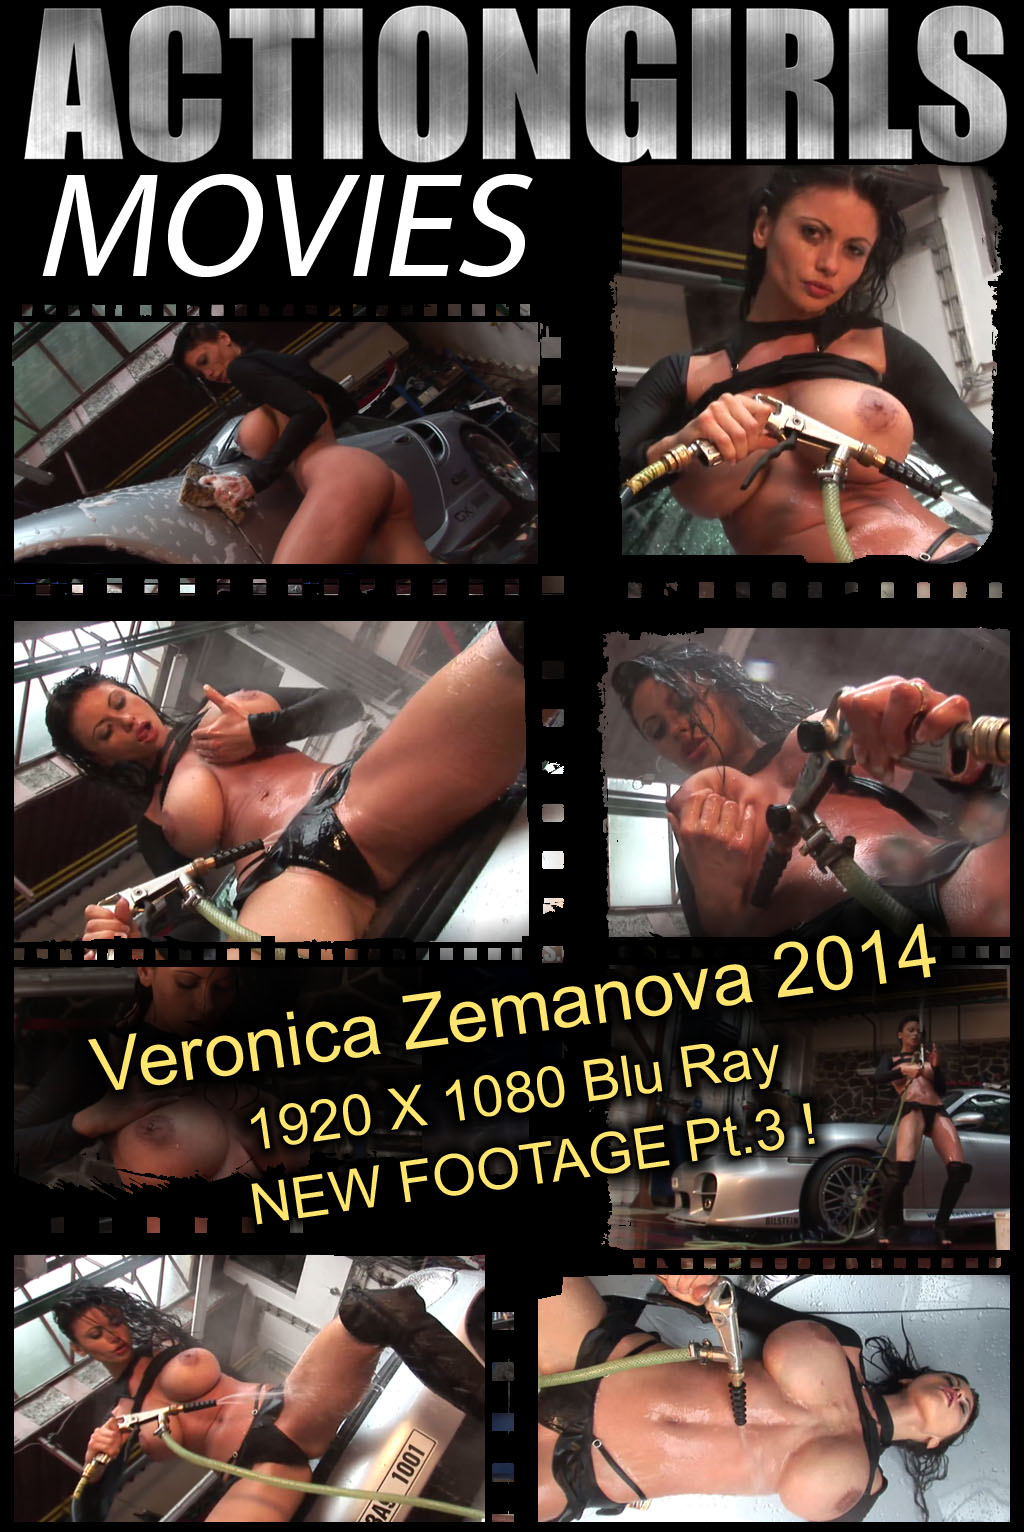 Veronica-NEW-FOOTAGE-Part3-BlueRay-Movie-POSTER